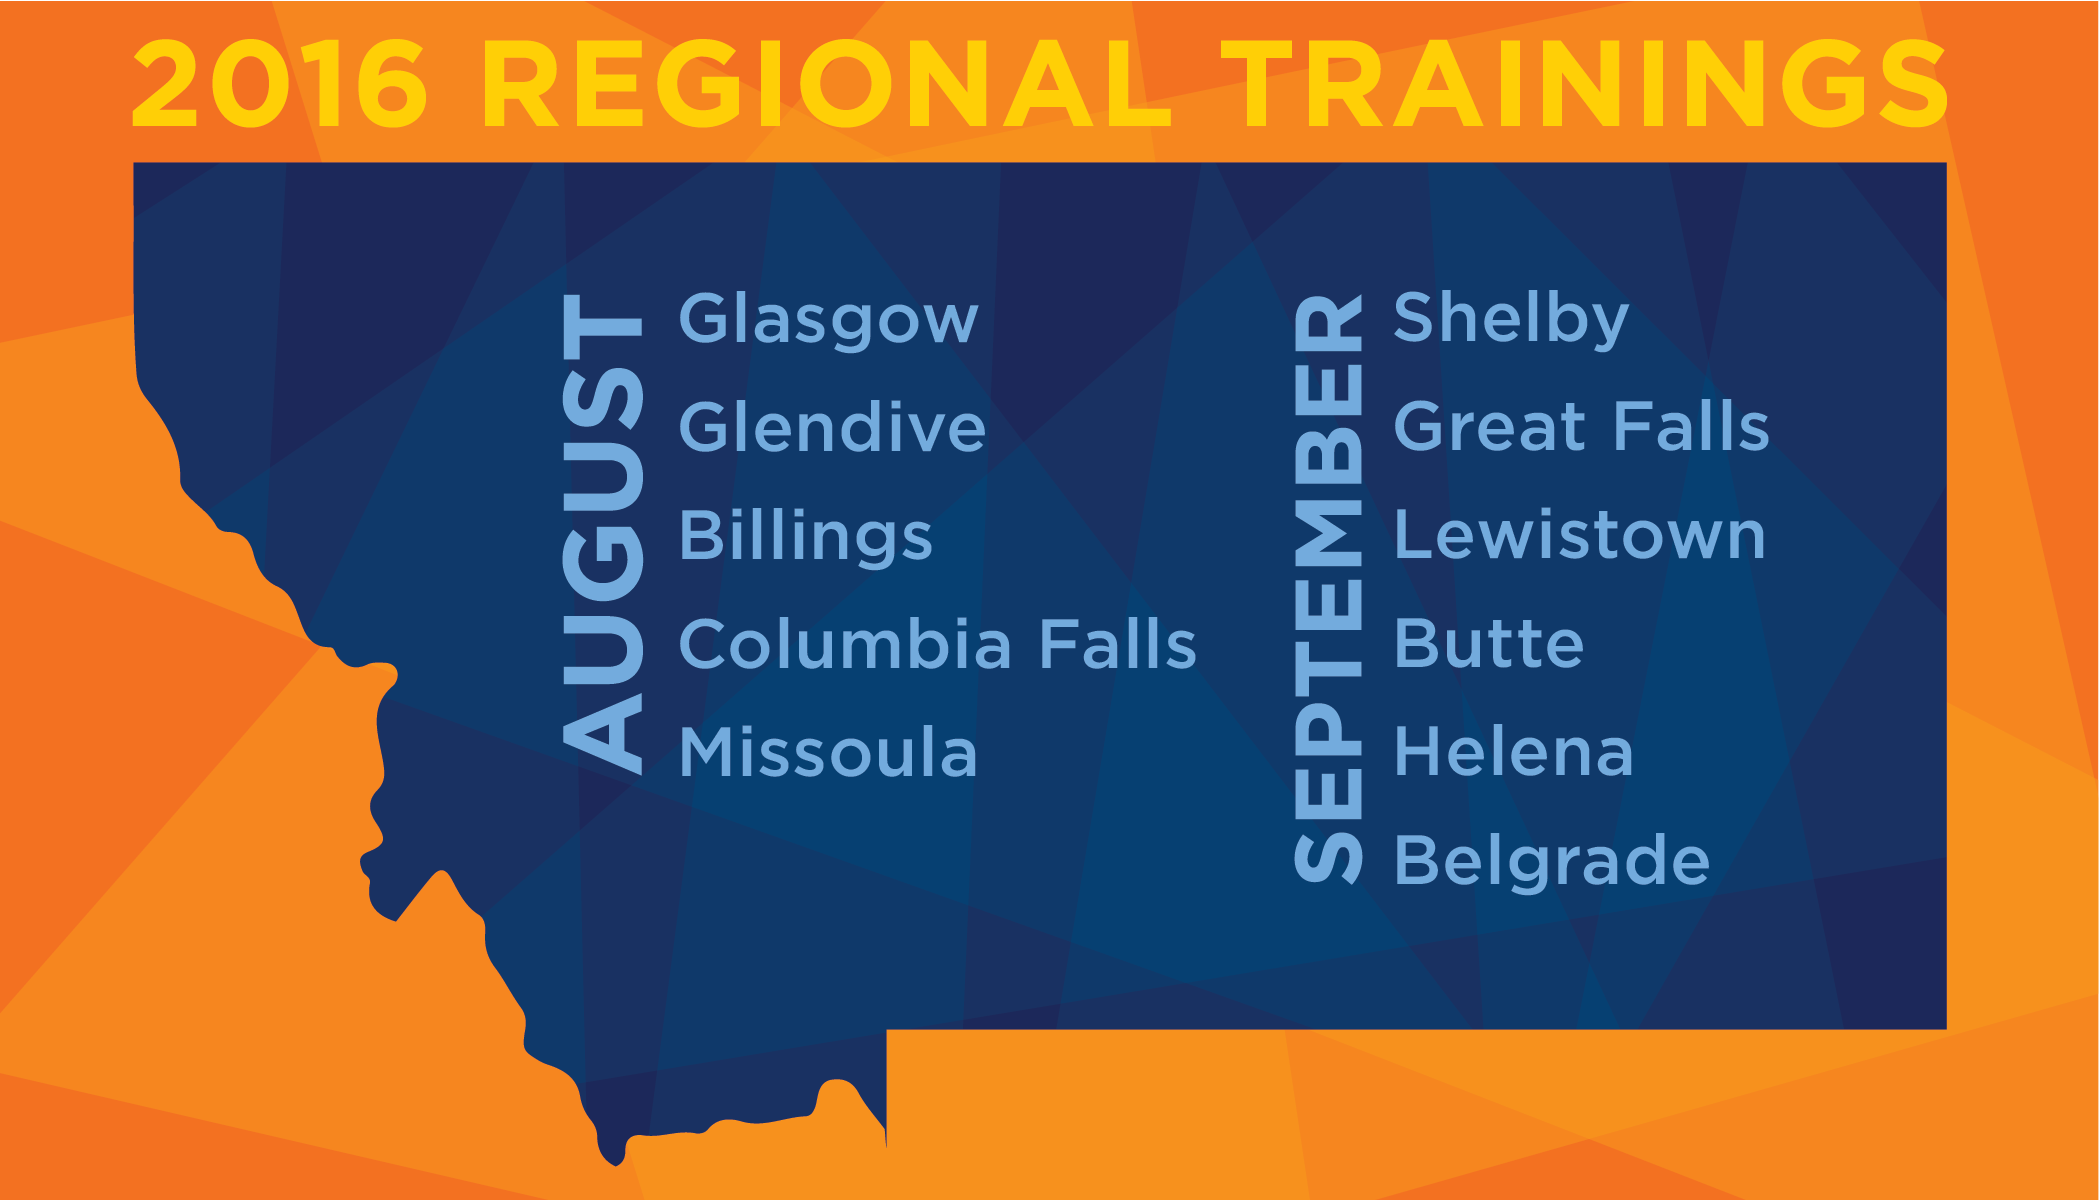 2016 Regional Trainings